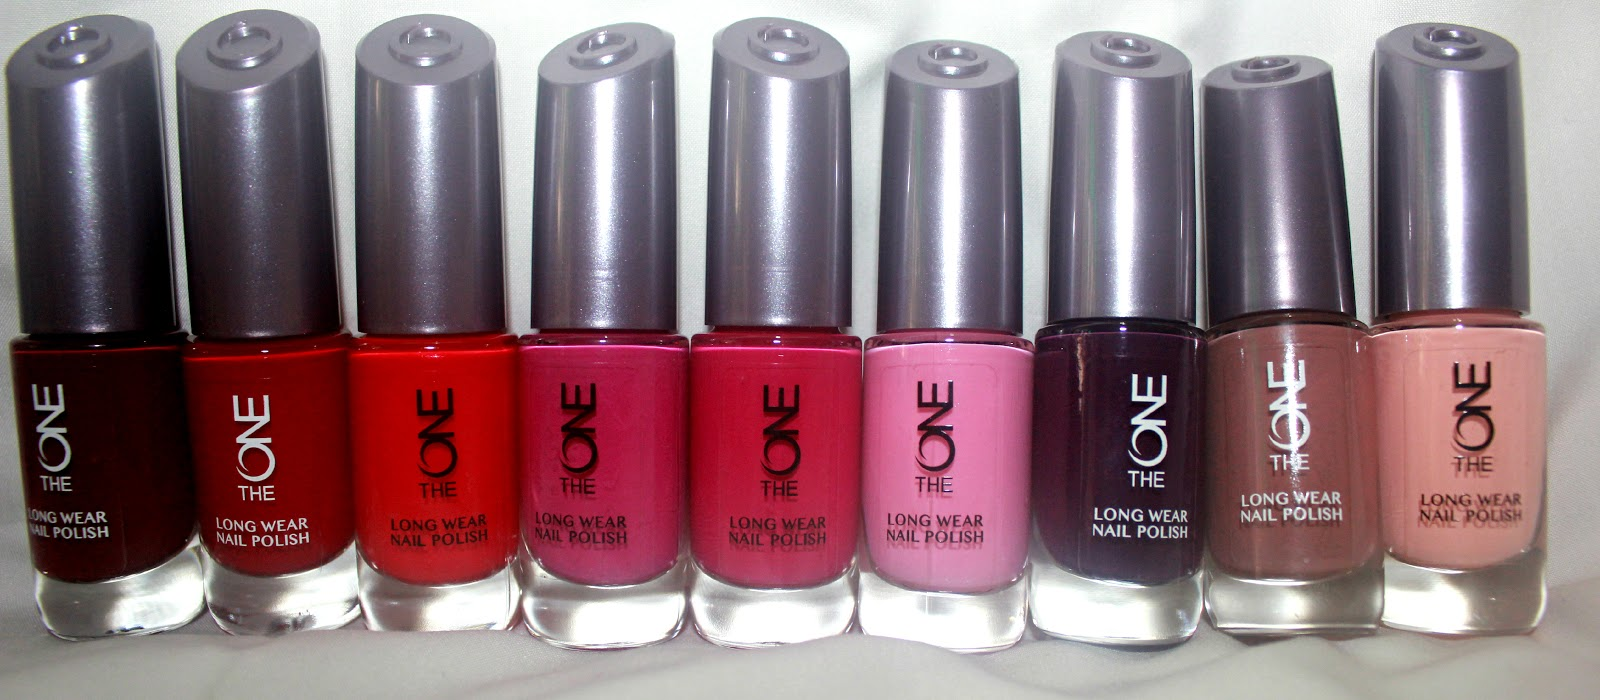 Oriflame The One Long Wear Nail Polish Review Makeup